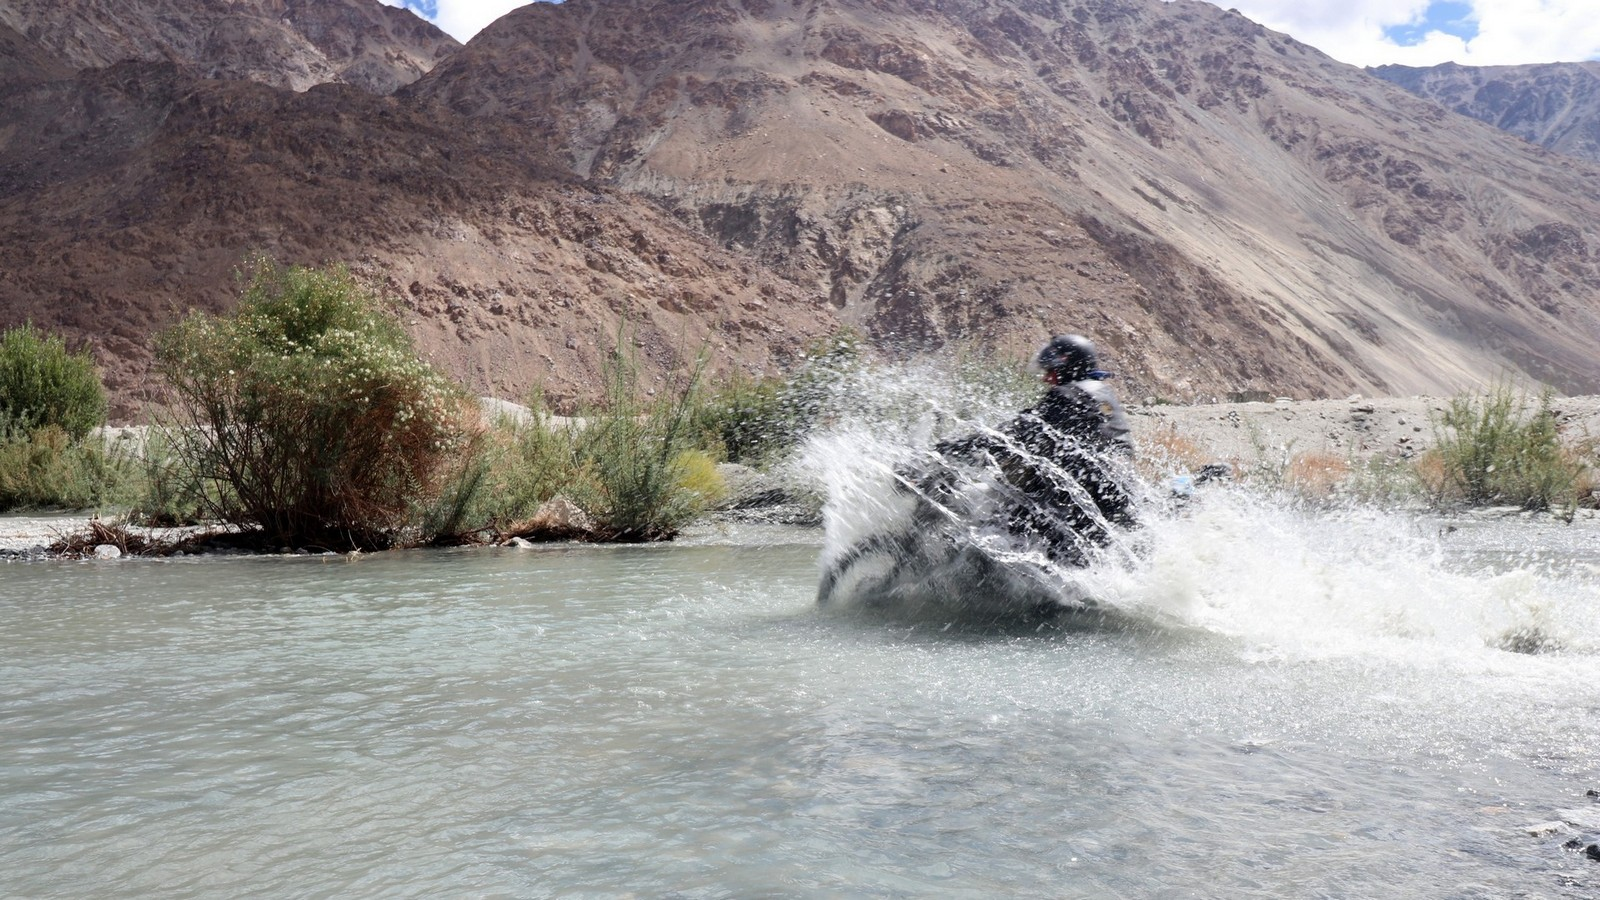 Crossing a River in the Spiti Valley